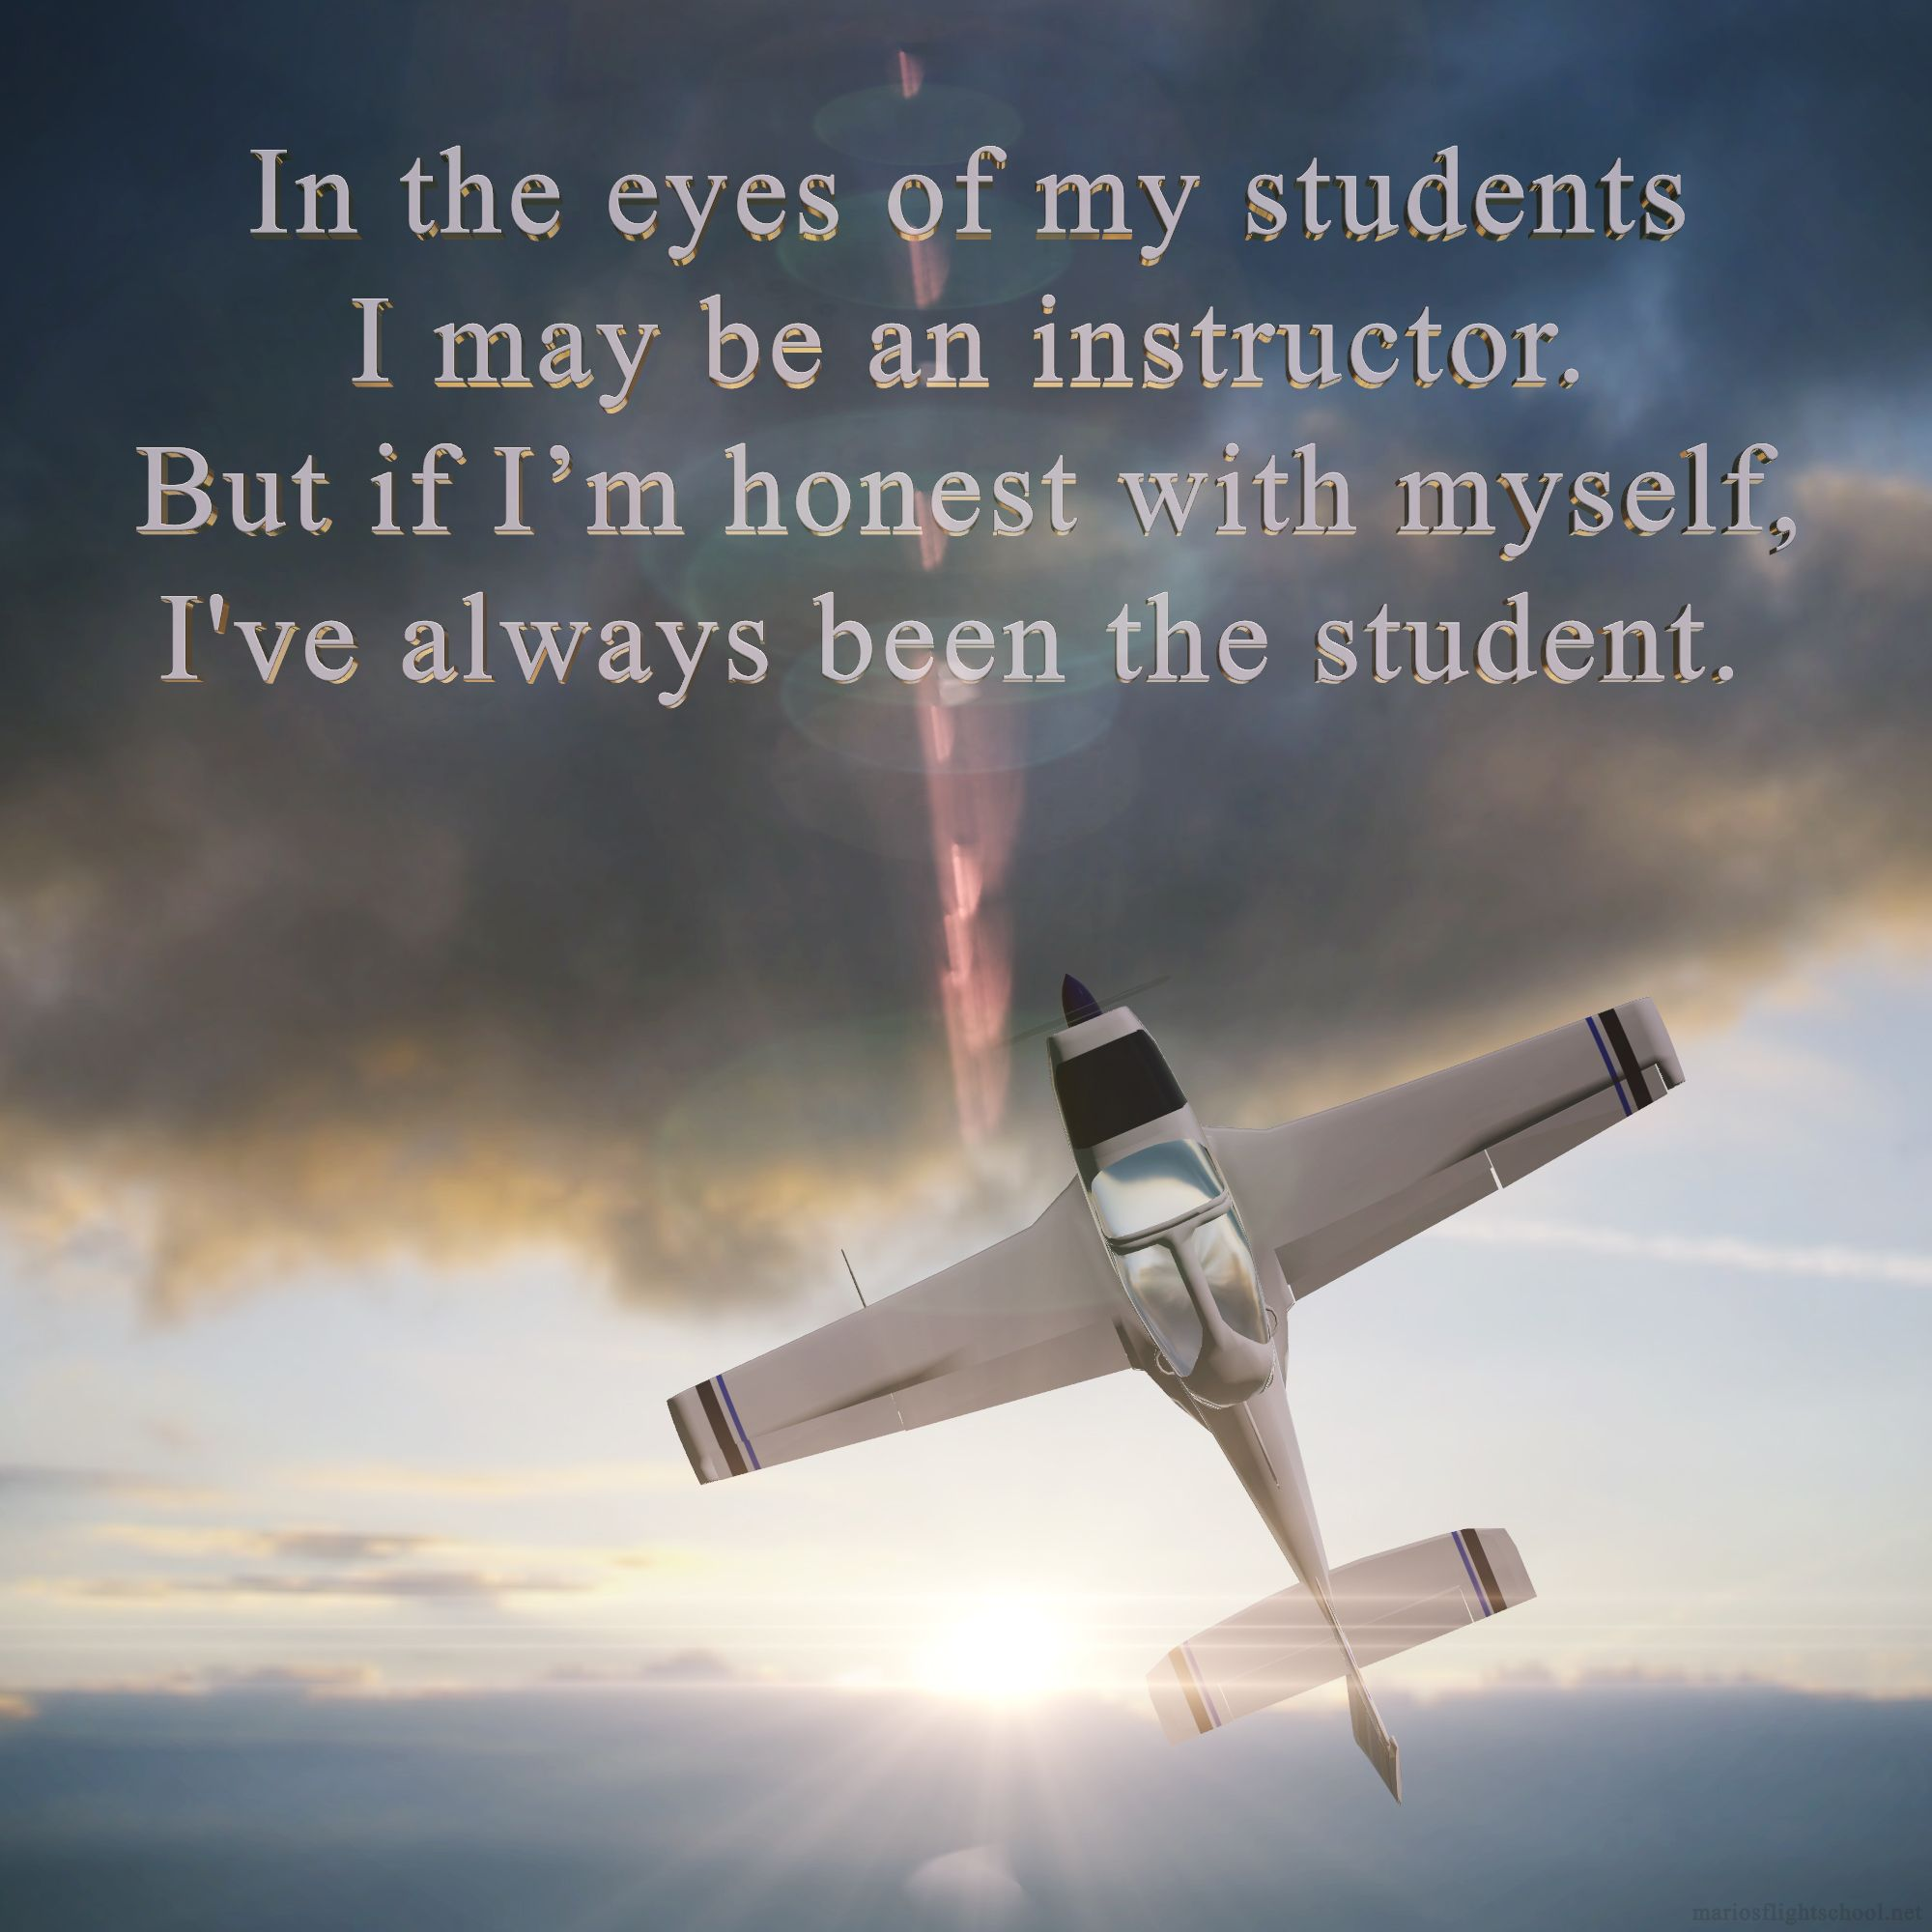 Aviation Aviation Quotes Aviation Quotes Pilot Quotes Airplane Quotes